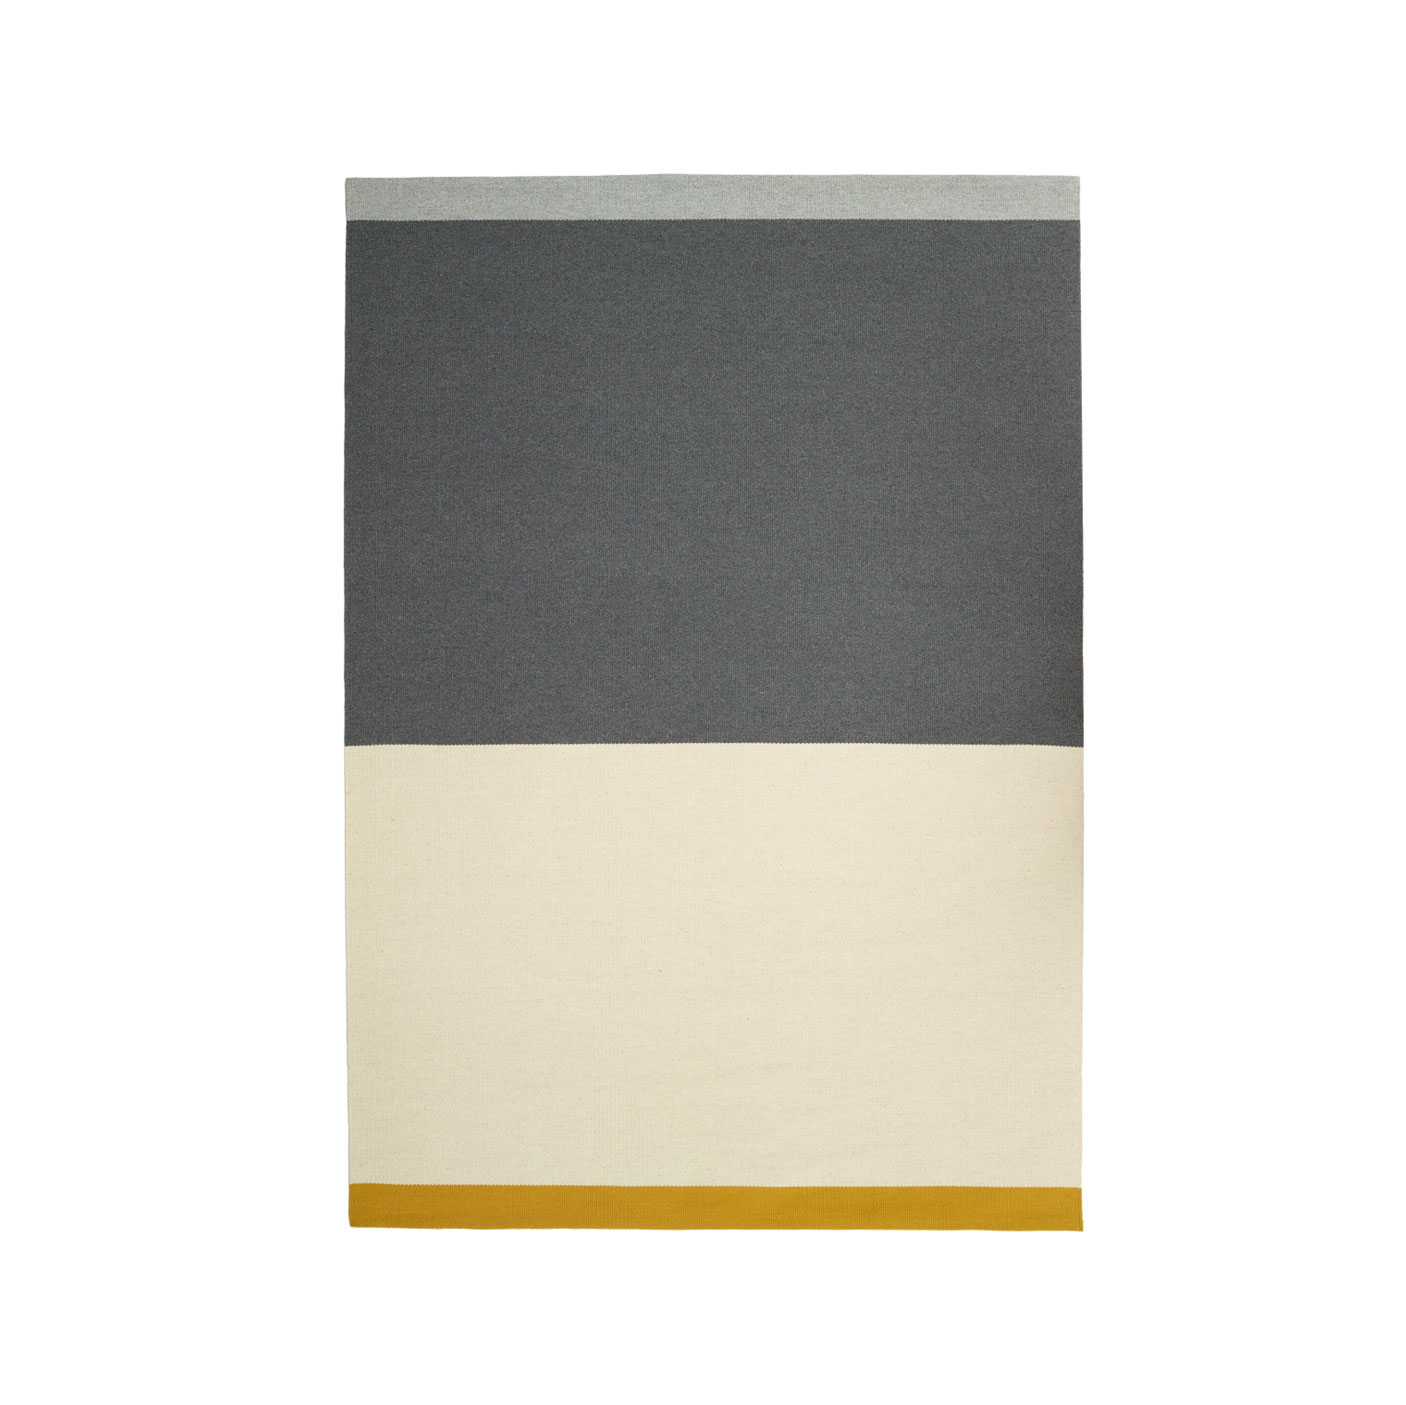 Fran Large Rug - <p>The Alfred Collection consists of five series (Fran, Frenzy, Lucy, Ivy, Billie) of handwoven minimalist carpets made by Belgian textile designers Marie Mees and Athérine Biasino. Firstly, all carpets are handwoven with a mixture of two top-shelf wools from New Zealand and Portugal, the first offering the right softness and look, the other adding strength. Secondly, the designers envision a minimalist aesthetic that resonates timelessness and not trendiness. In fact, hyped colours are fiercely avoided. By offering highly durable and supremely sober carpets, the Alfred Collection honours the archetype of the carpet, pure in form and in function, making it the perfect textile for the minimalist interior of the design admirer. Composition of the carpet is a mixture of Merino, New Zealand and Beira Alta (Portuguese wool).</p>  | Matter of Stuff